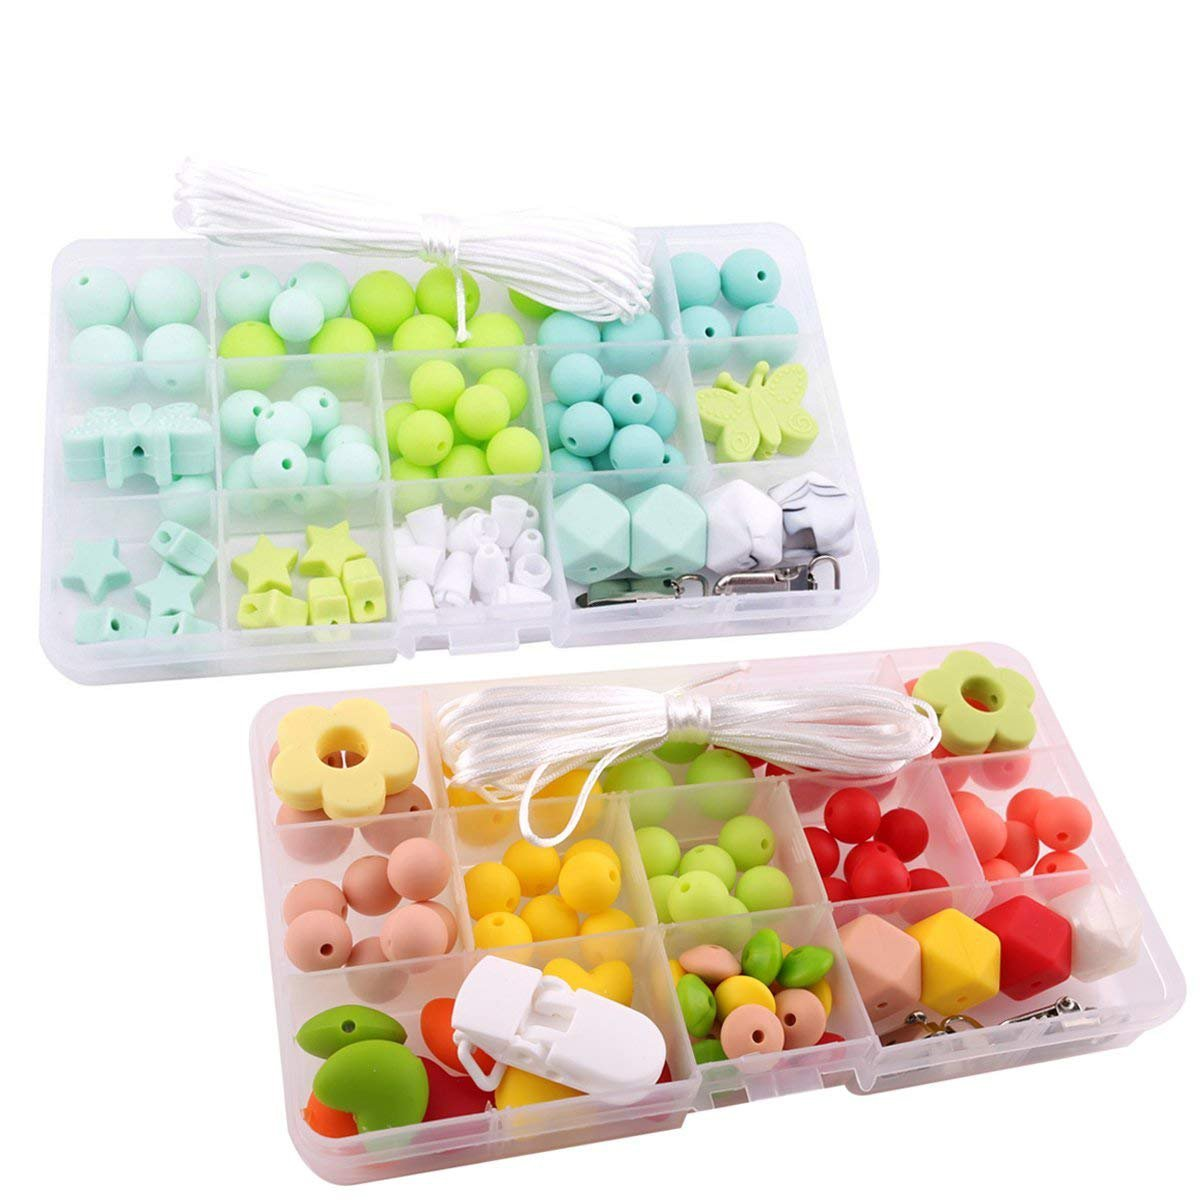 Best for baby Silicone Octagonal Beads Kit Baby Teether Set DIY Teething Jewelry Necklace Food Grade Monterey Toys